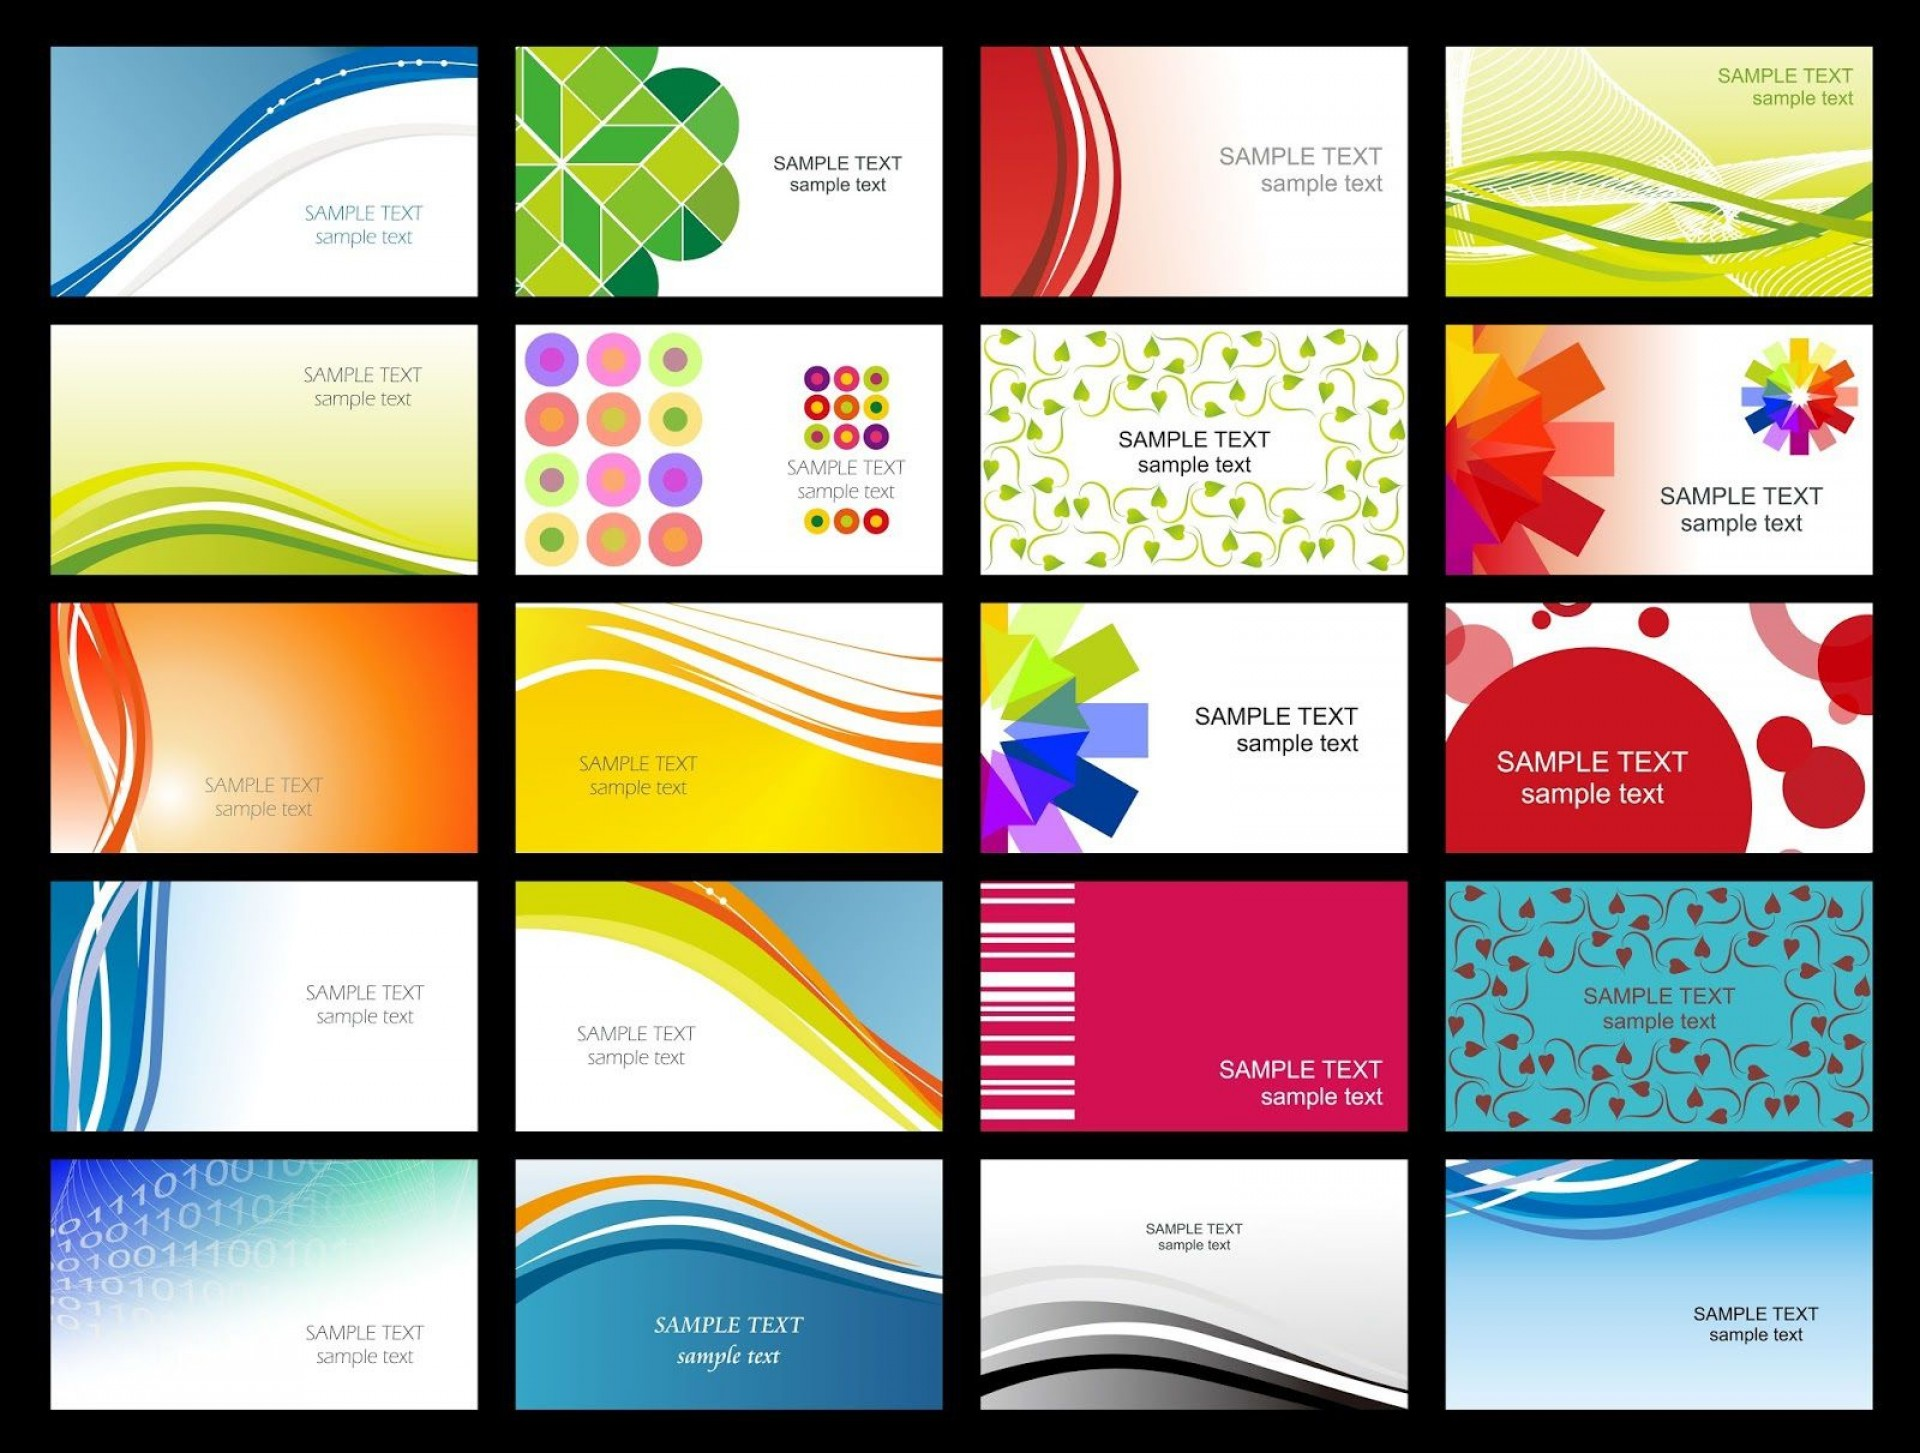 008 Stunning Busines Card Template Free Download Sample  Psd File Pdf Ppt1920